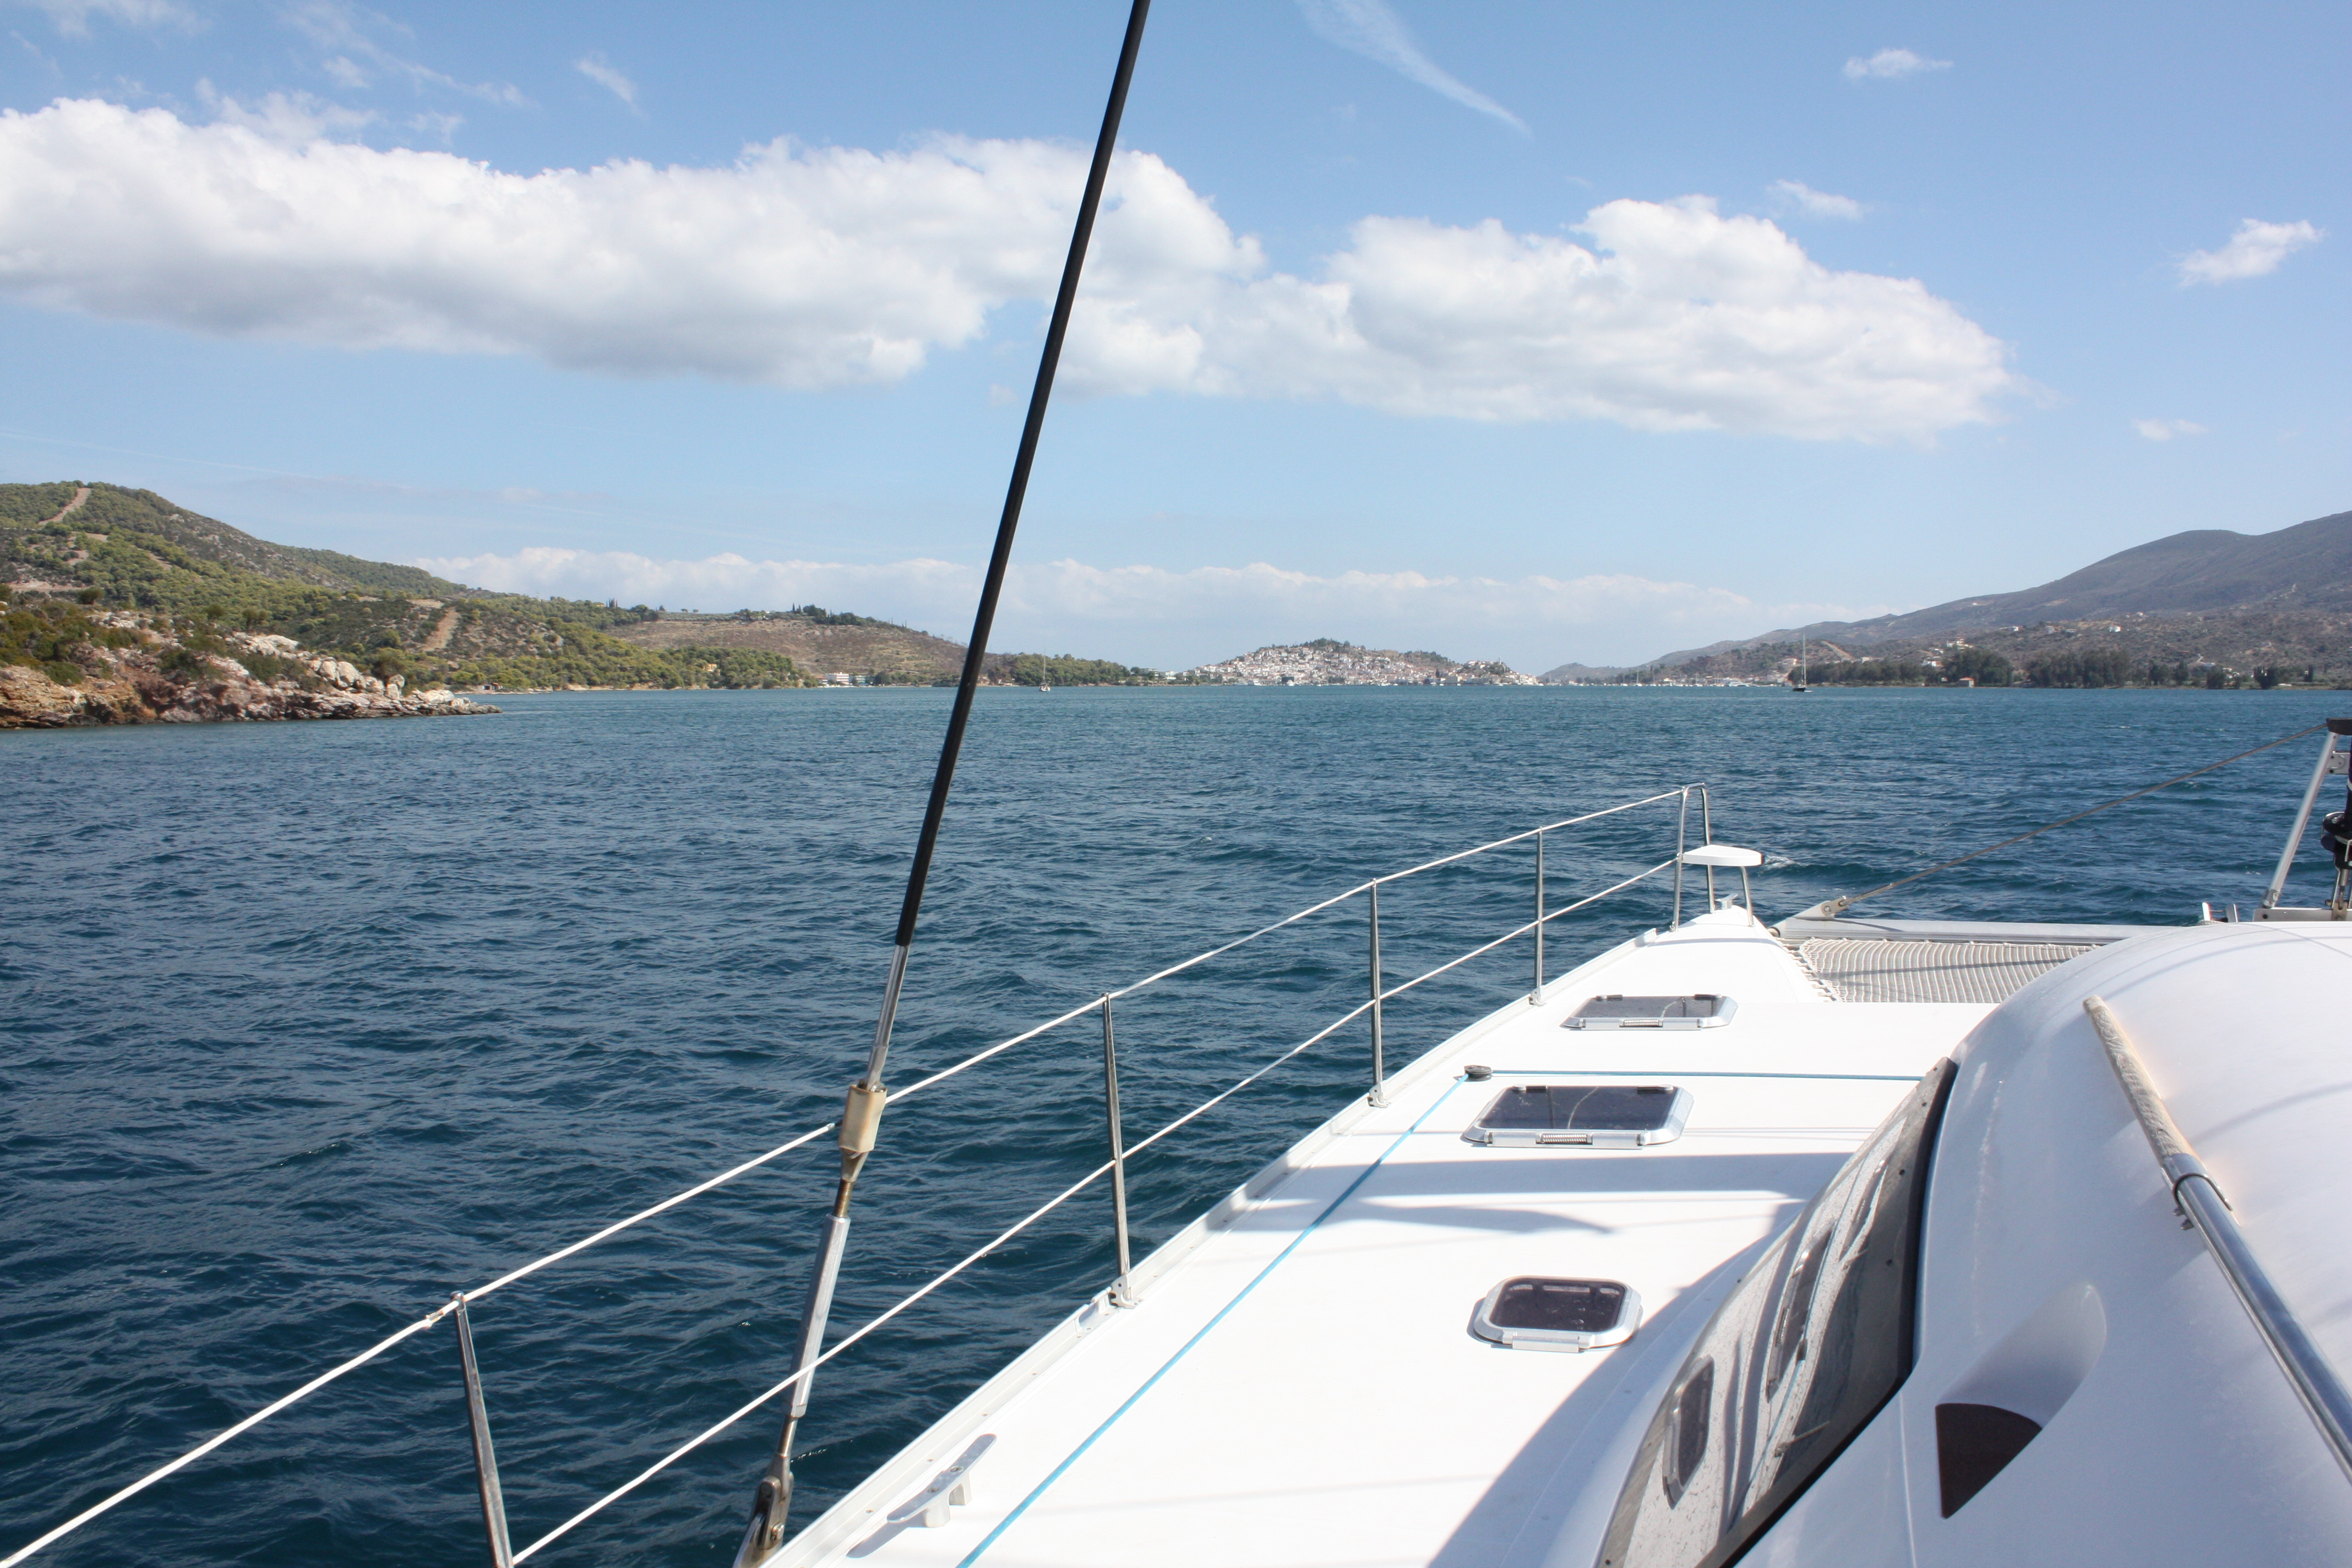 Poros view from the boat